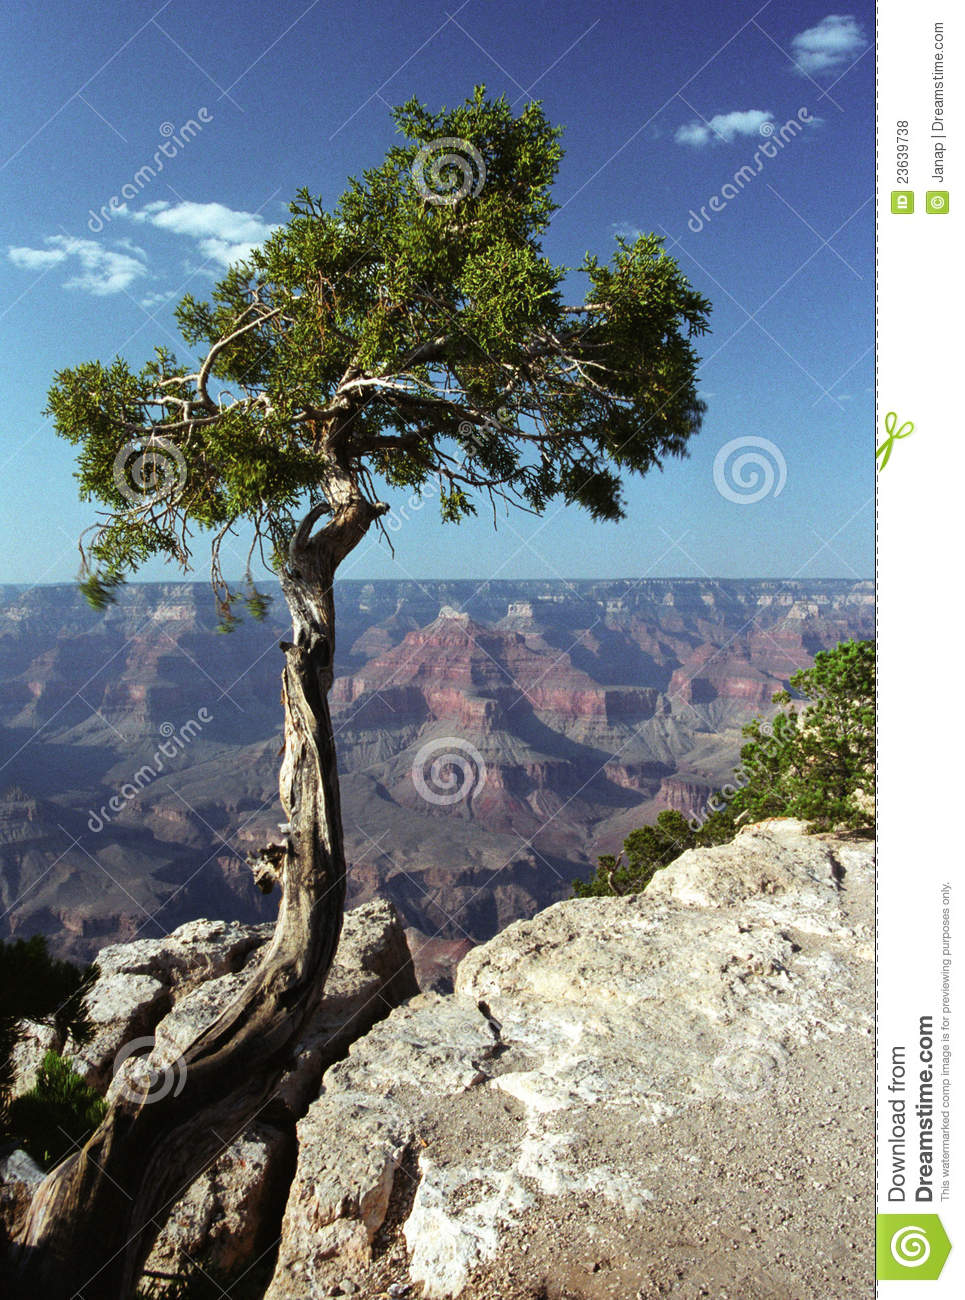 3d Animation Animals Wallpaper Pine Tree In Grand Canyon Royalty Free Stock Photos